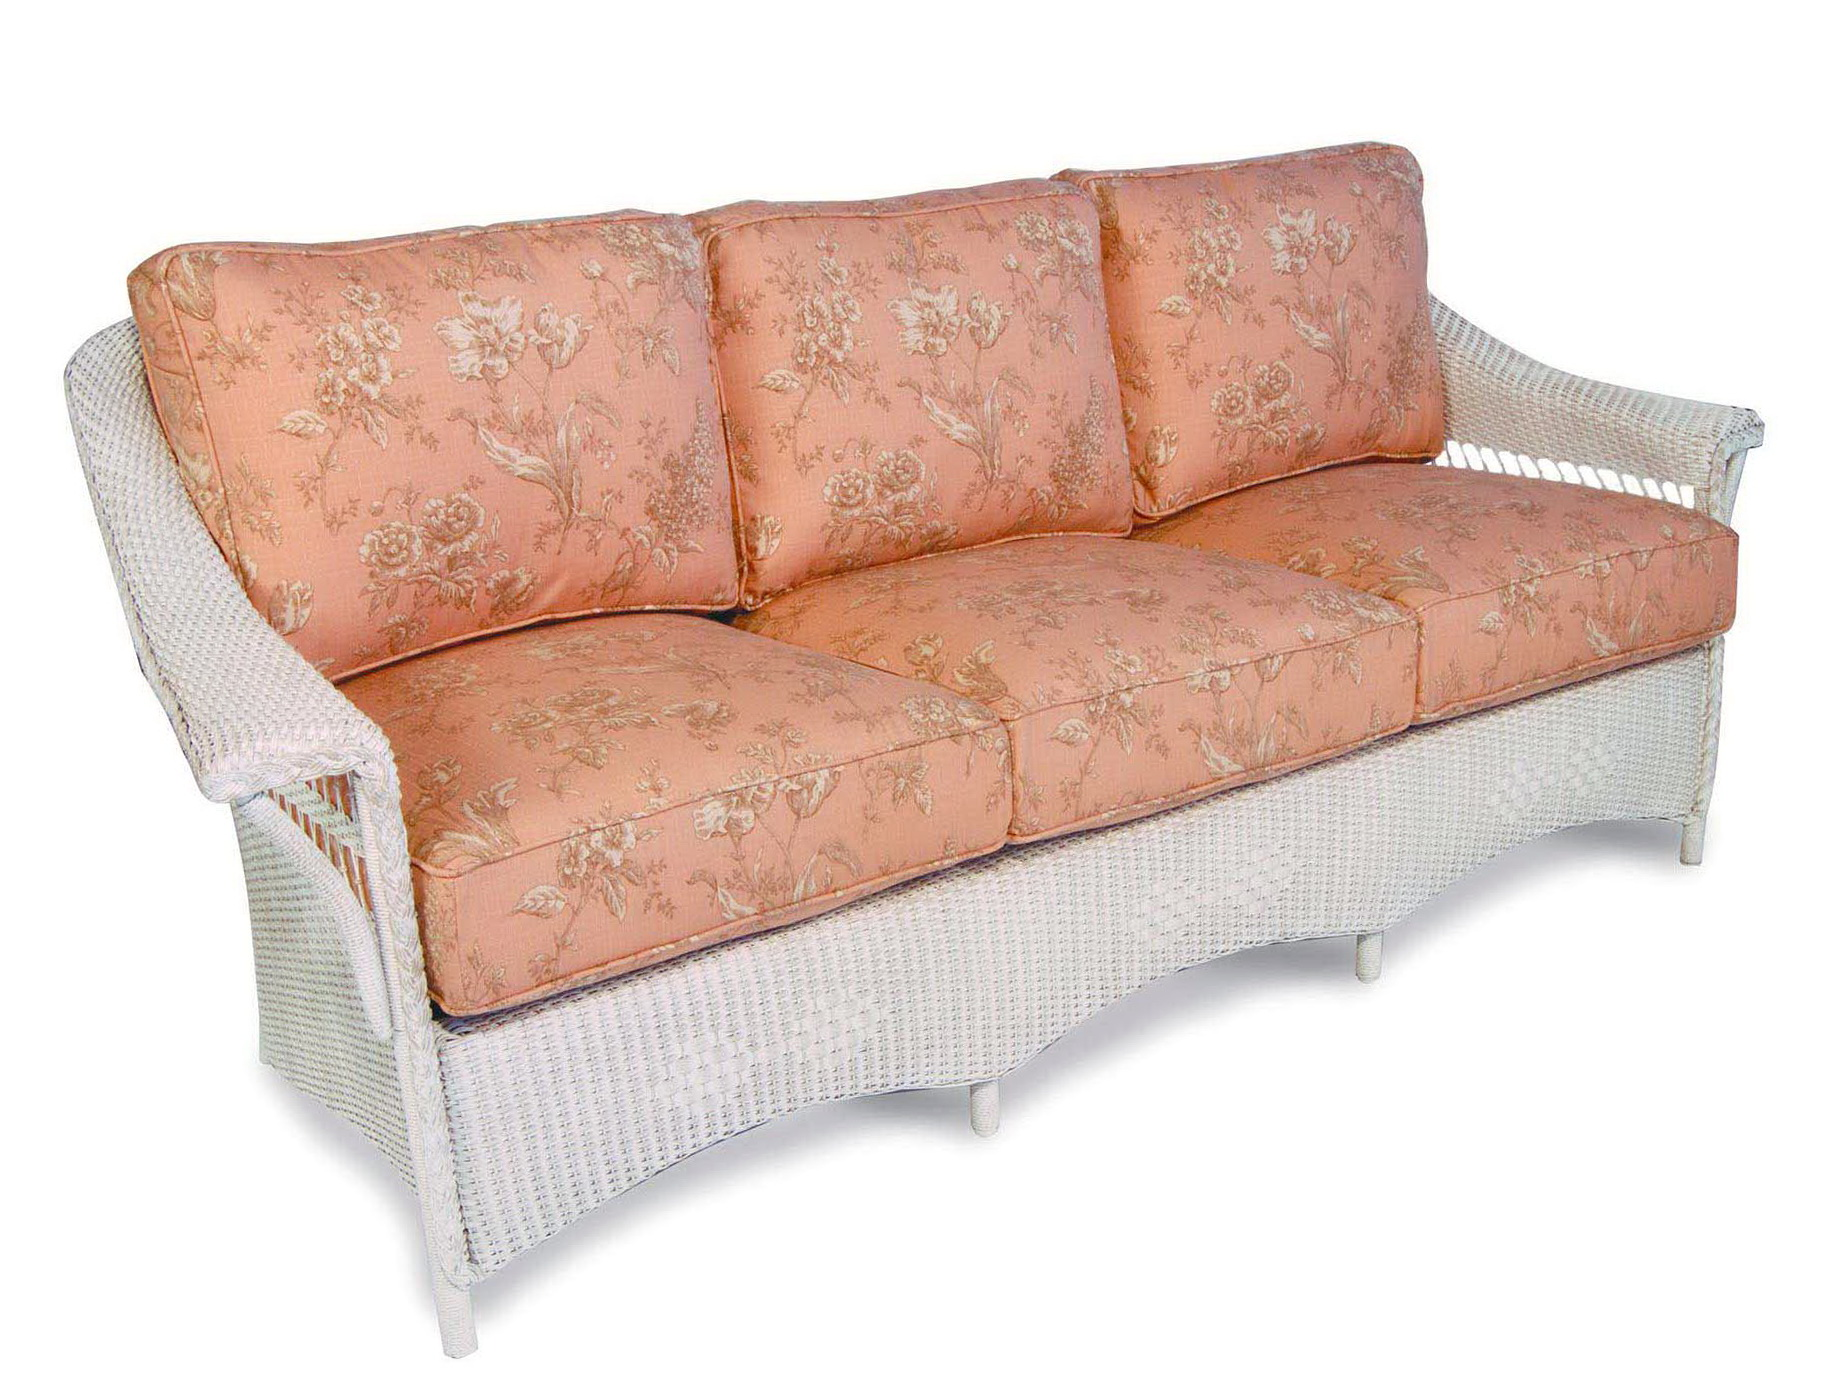 Replacement Seat Cushions Sofa